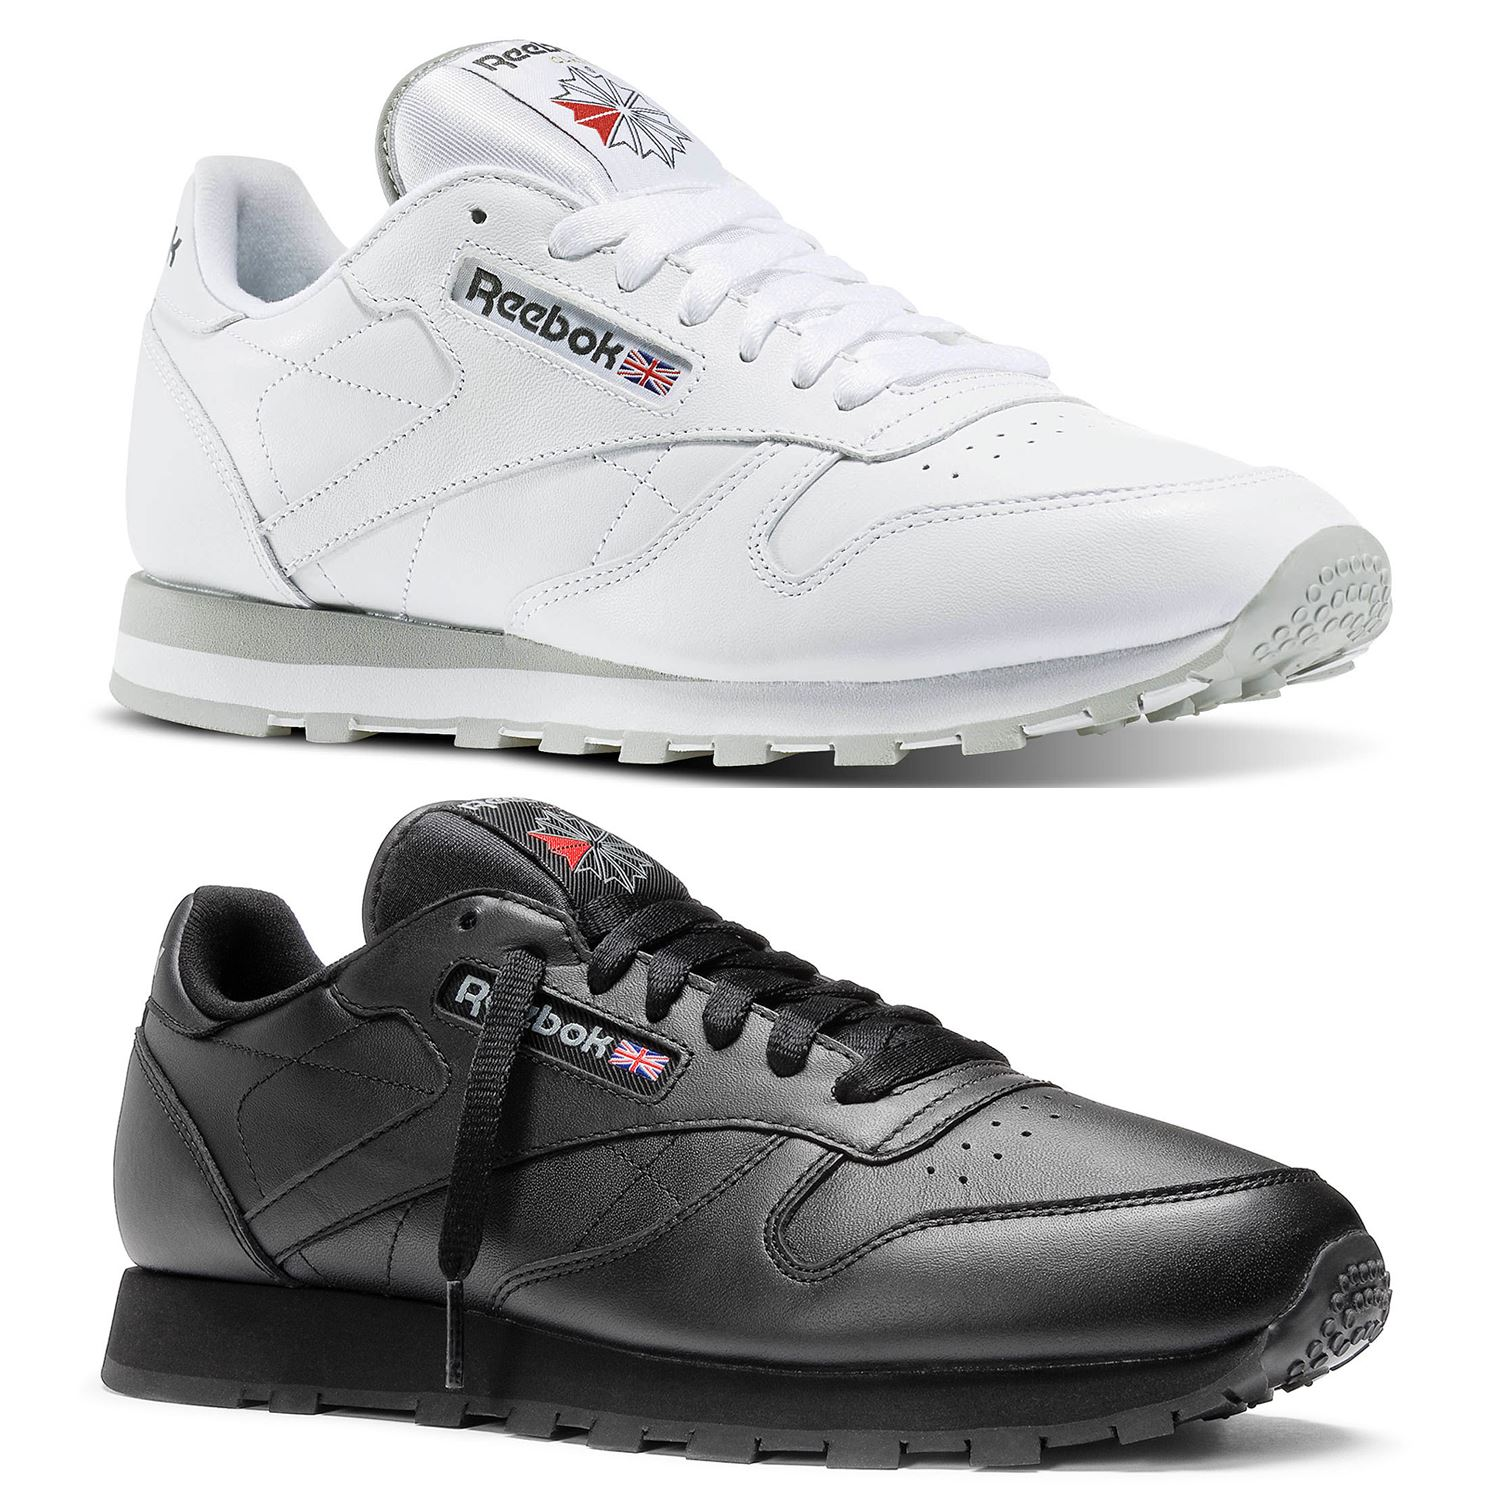 Details about REEBOK CLASSIC TRAINERS RETRO LEATHER BLACK WHITE GREY 7 - 12  SNEAKERS SHOES 0da5ae80b